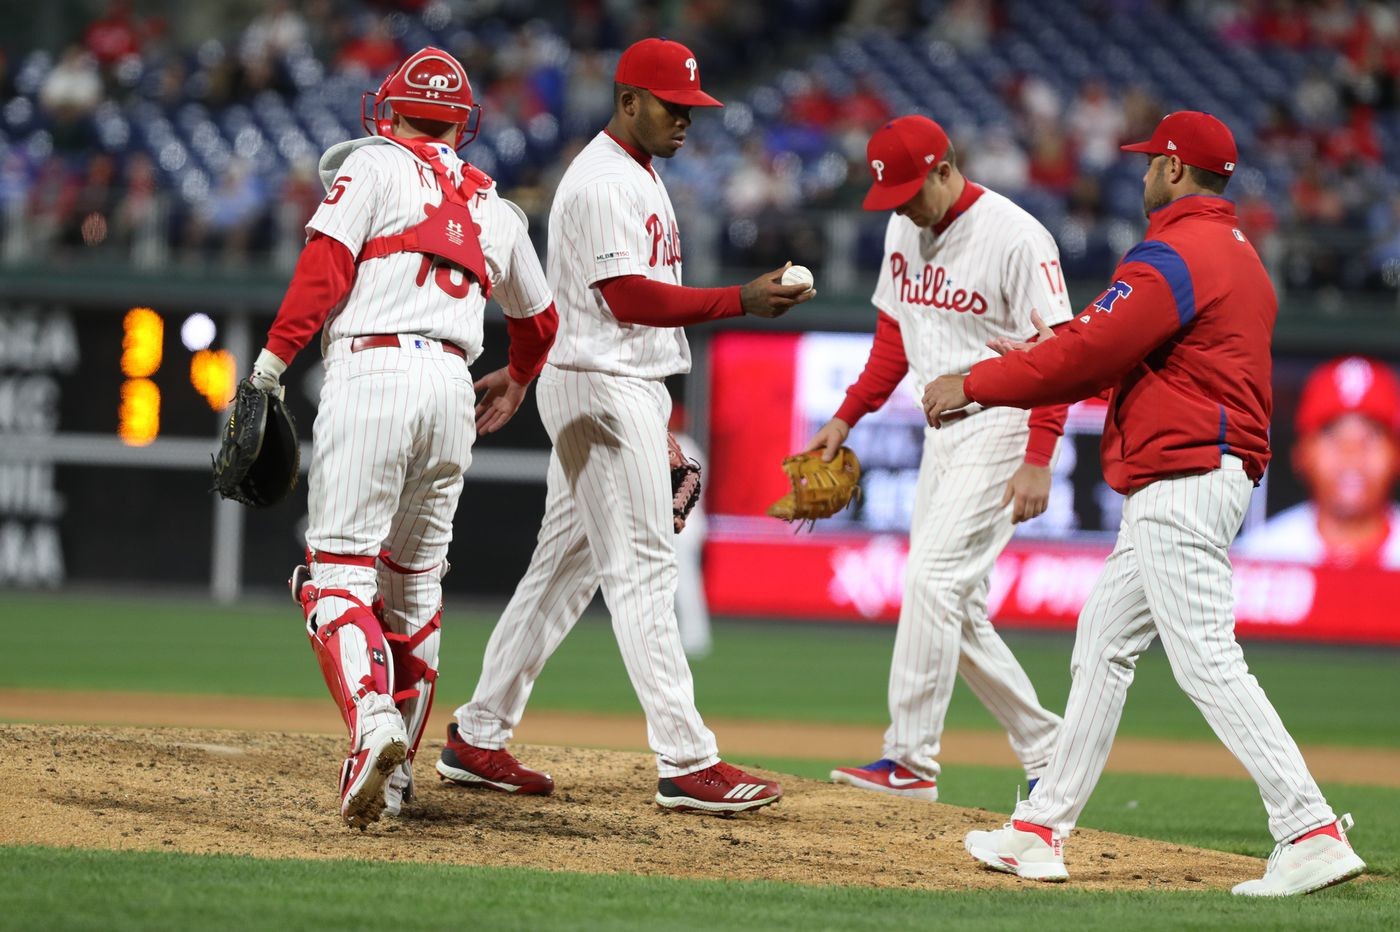 Phillies need to regain their momentum against lowly Marlins, gain ground in a talented NL East | Bob Brookover